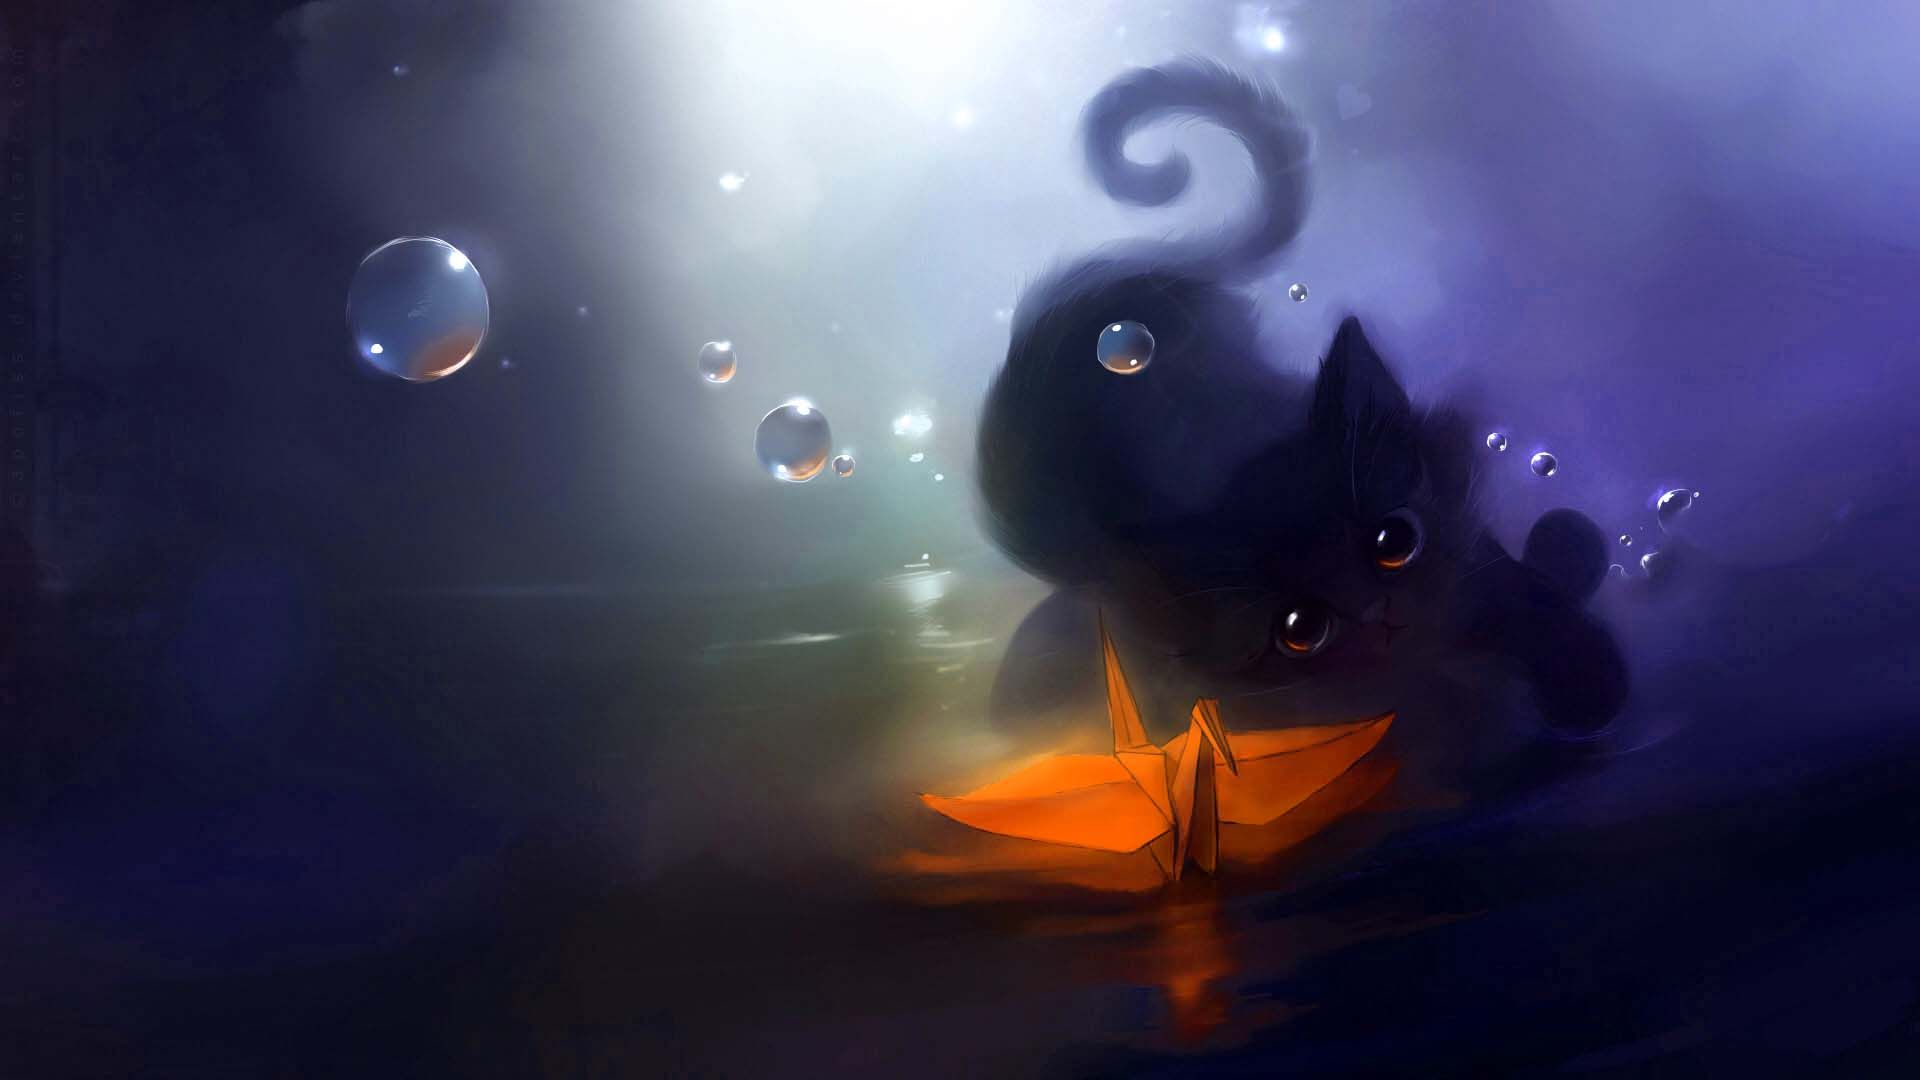 anime-cat-background